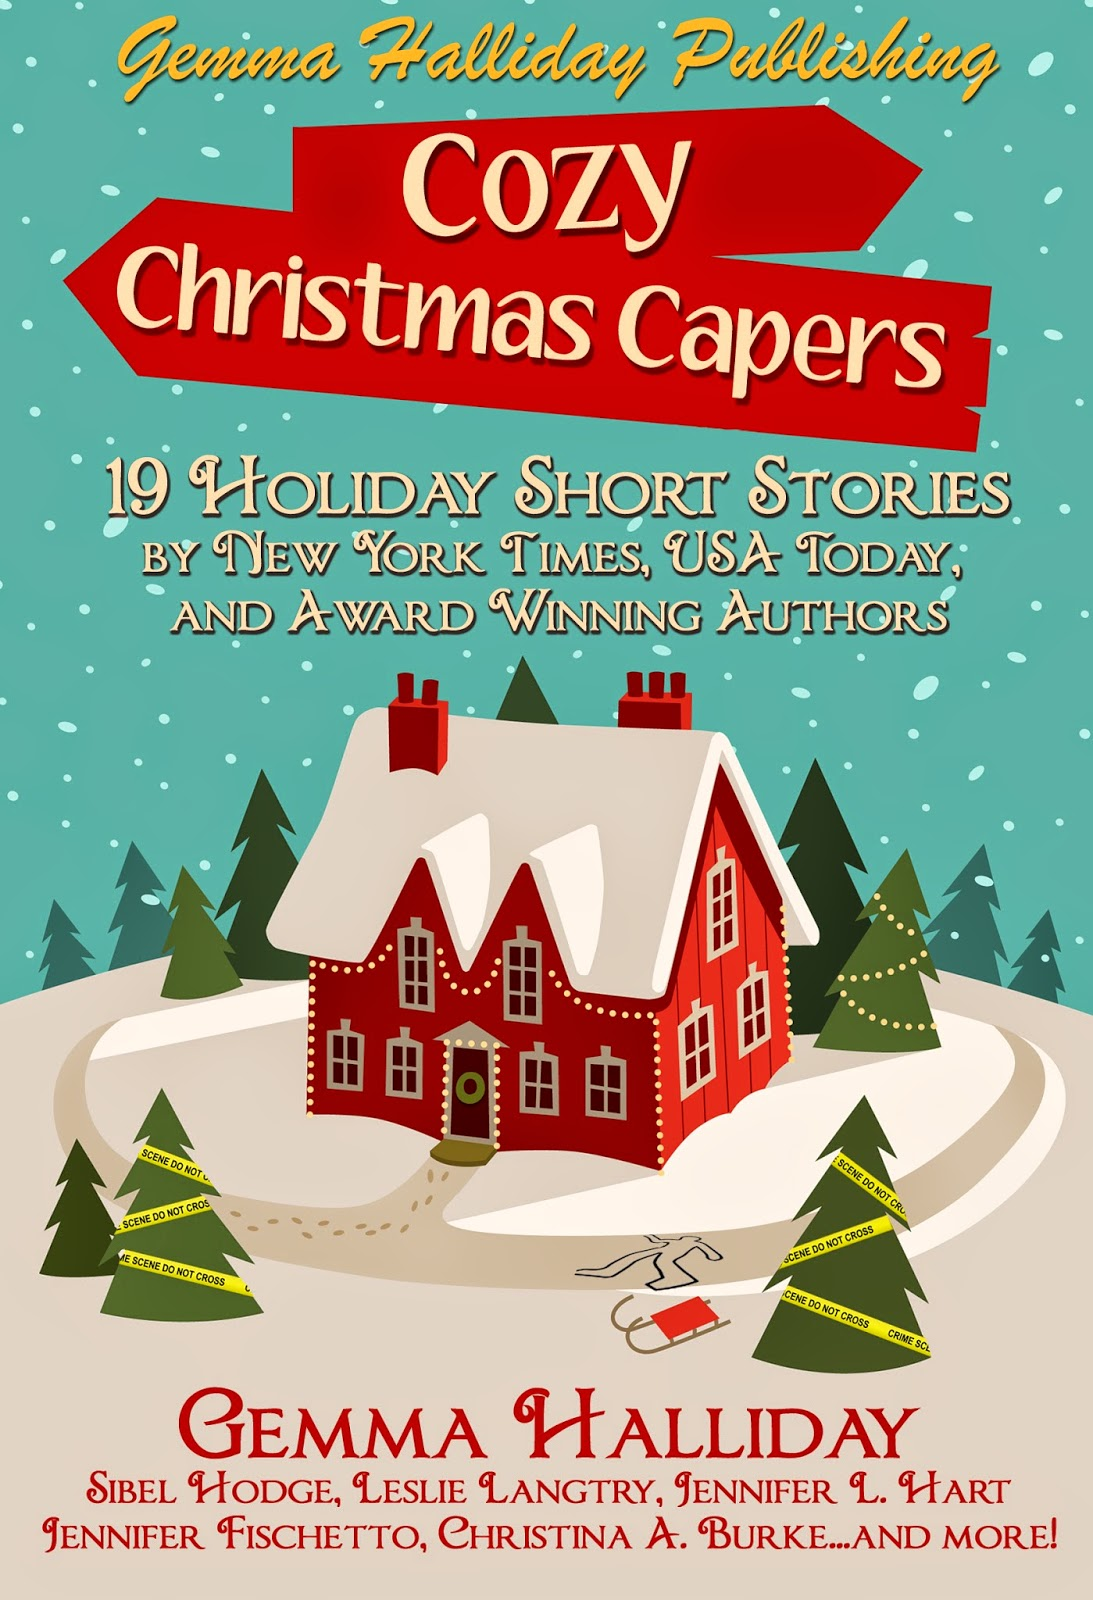 COZY CHRISTMAS CAPERS  HOLIDAY BOOK BLITZ!